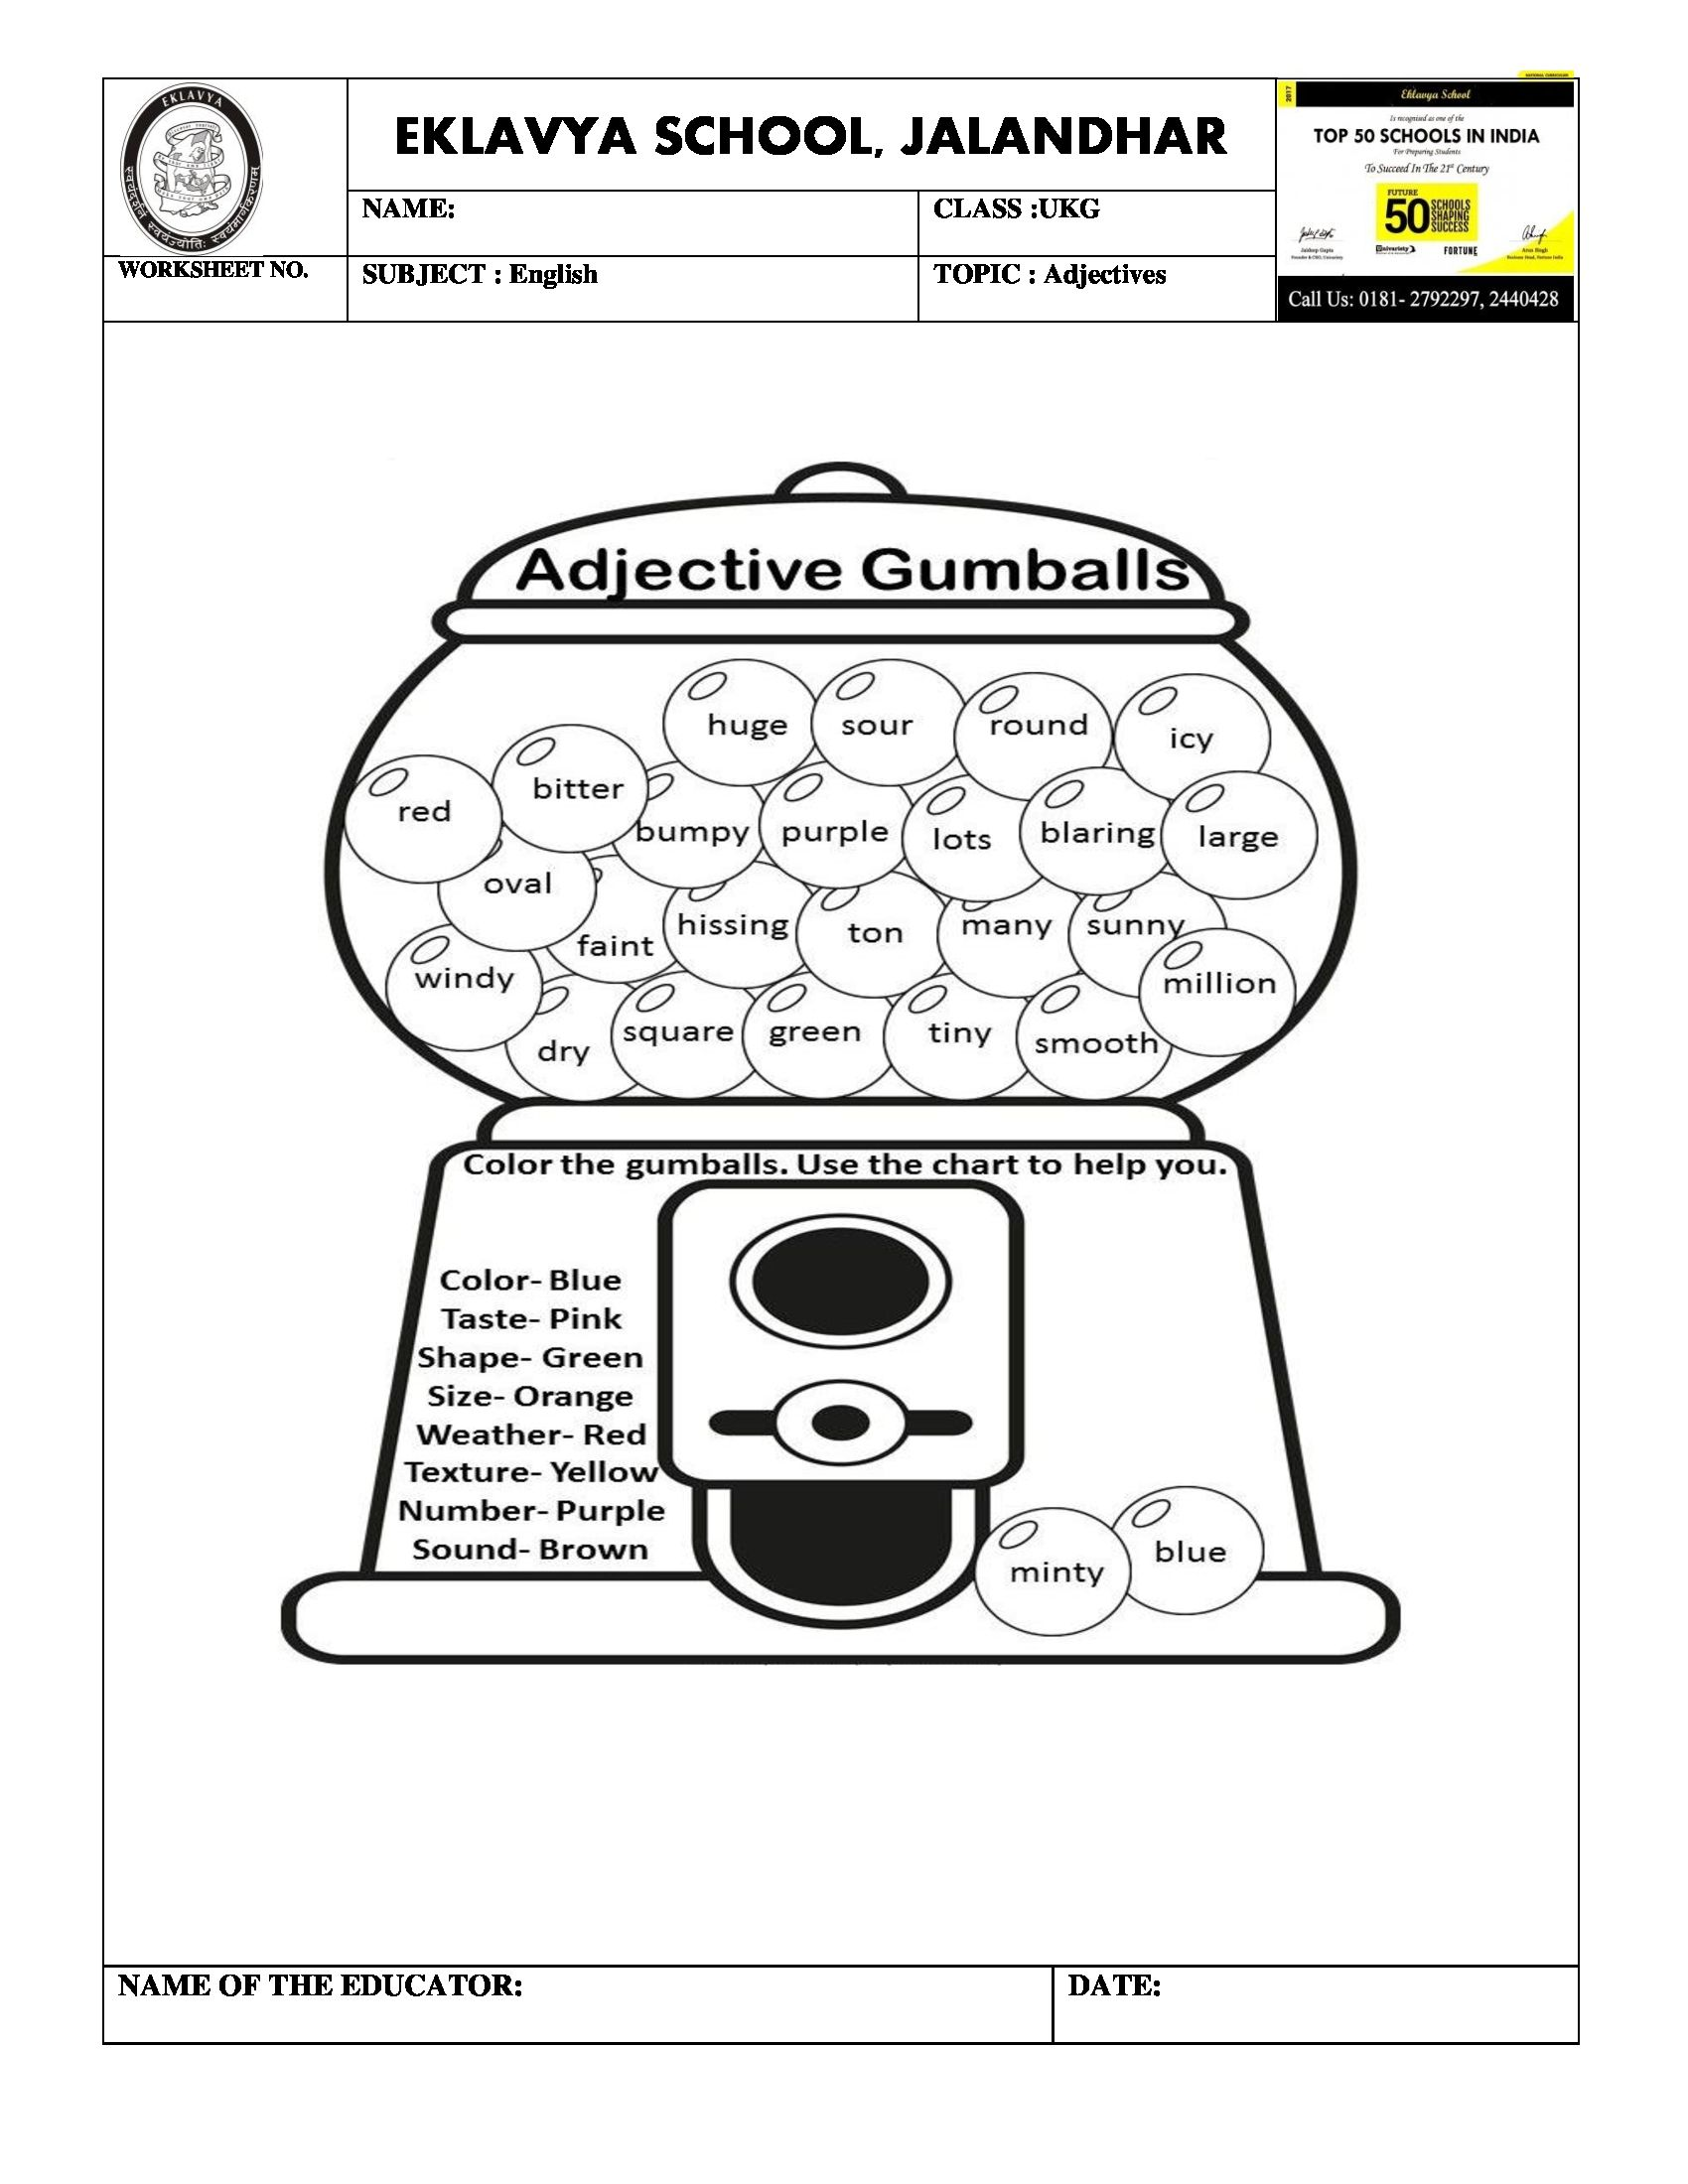 Worksheet On Adjectives